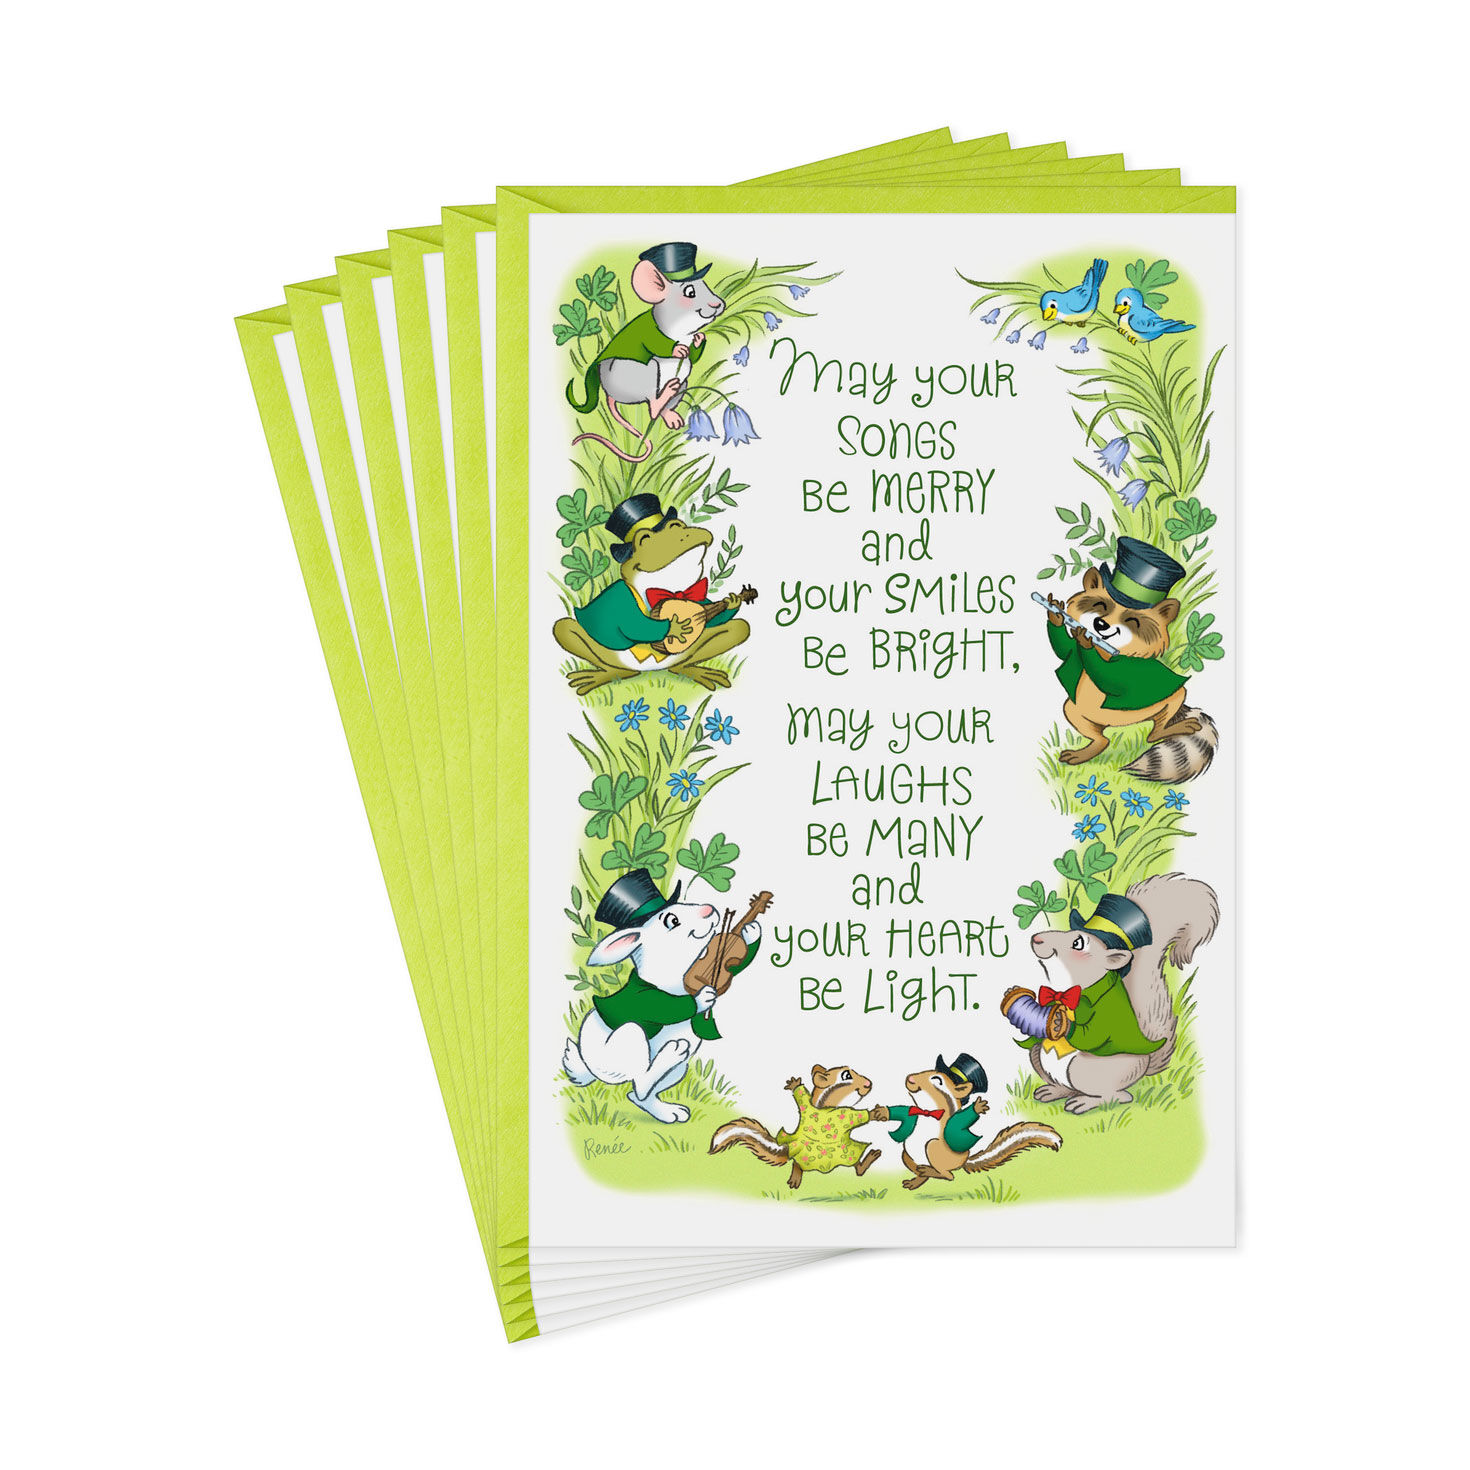 Best of Everything 6 Cards with Envelopes Patricks Day Cards Hallmark Pack of St